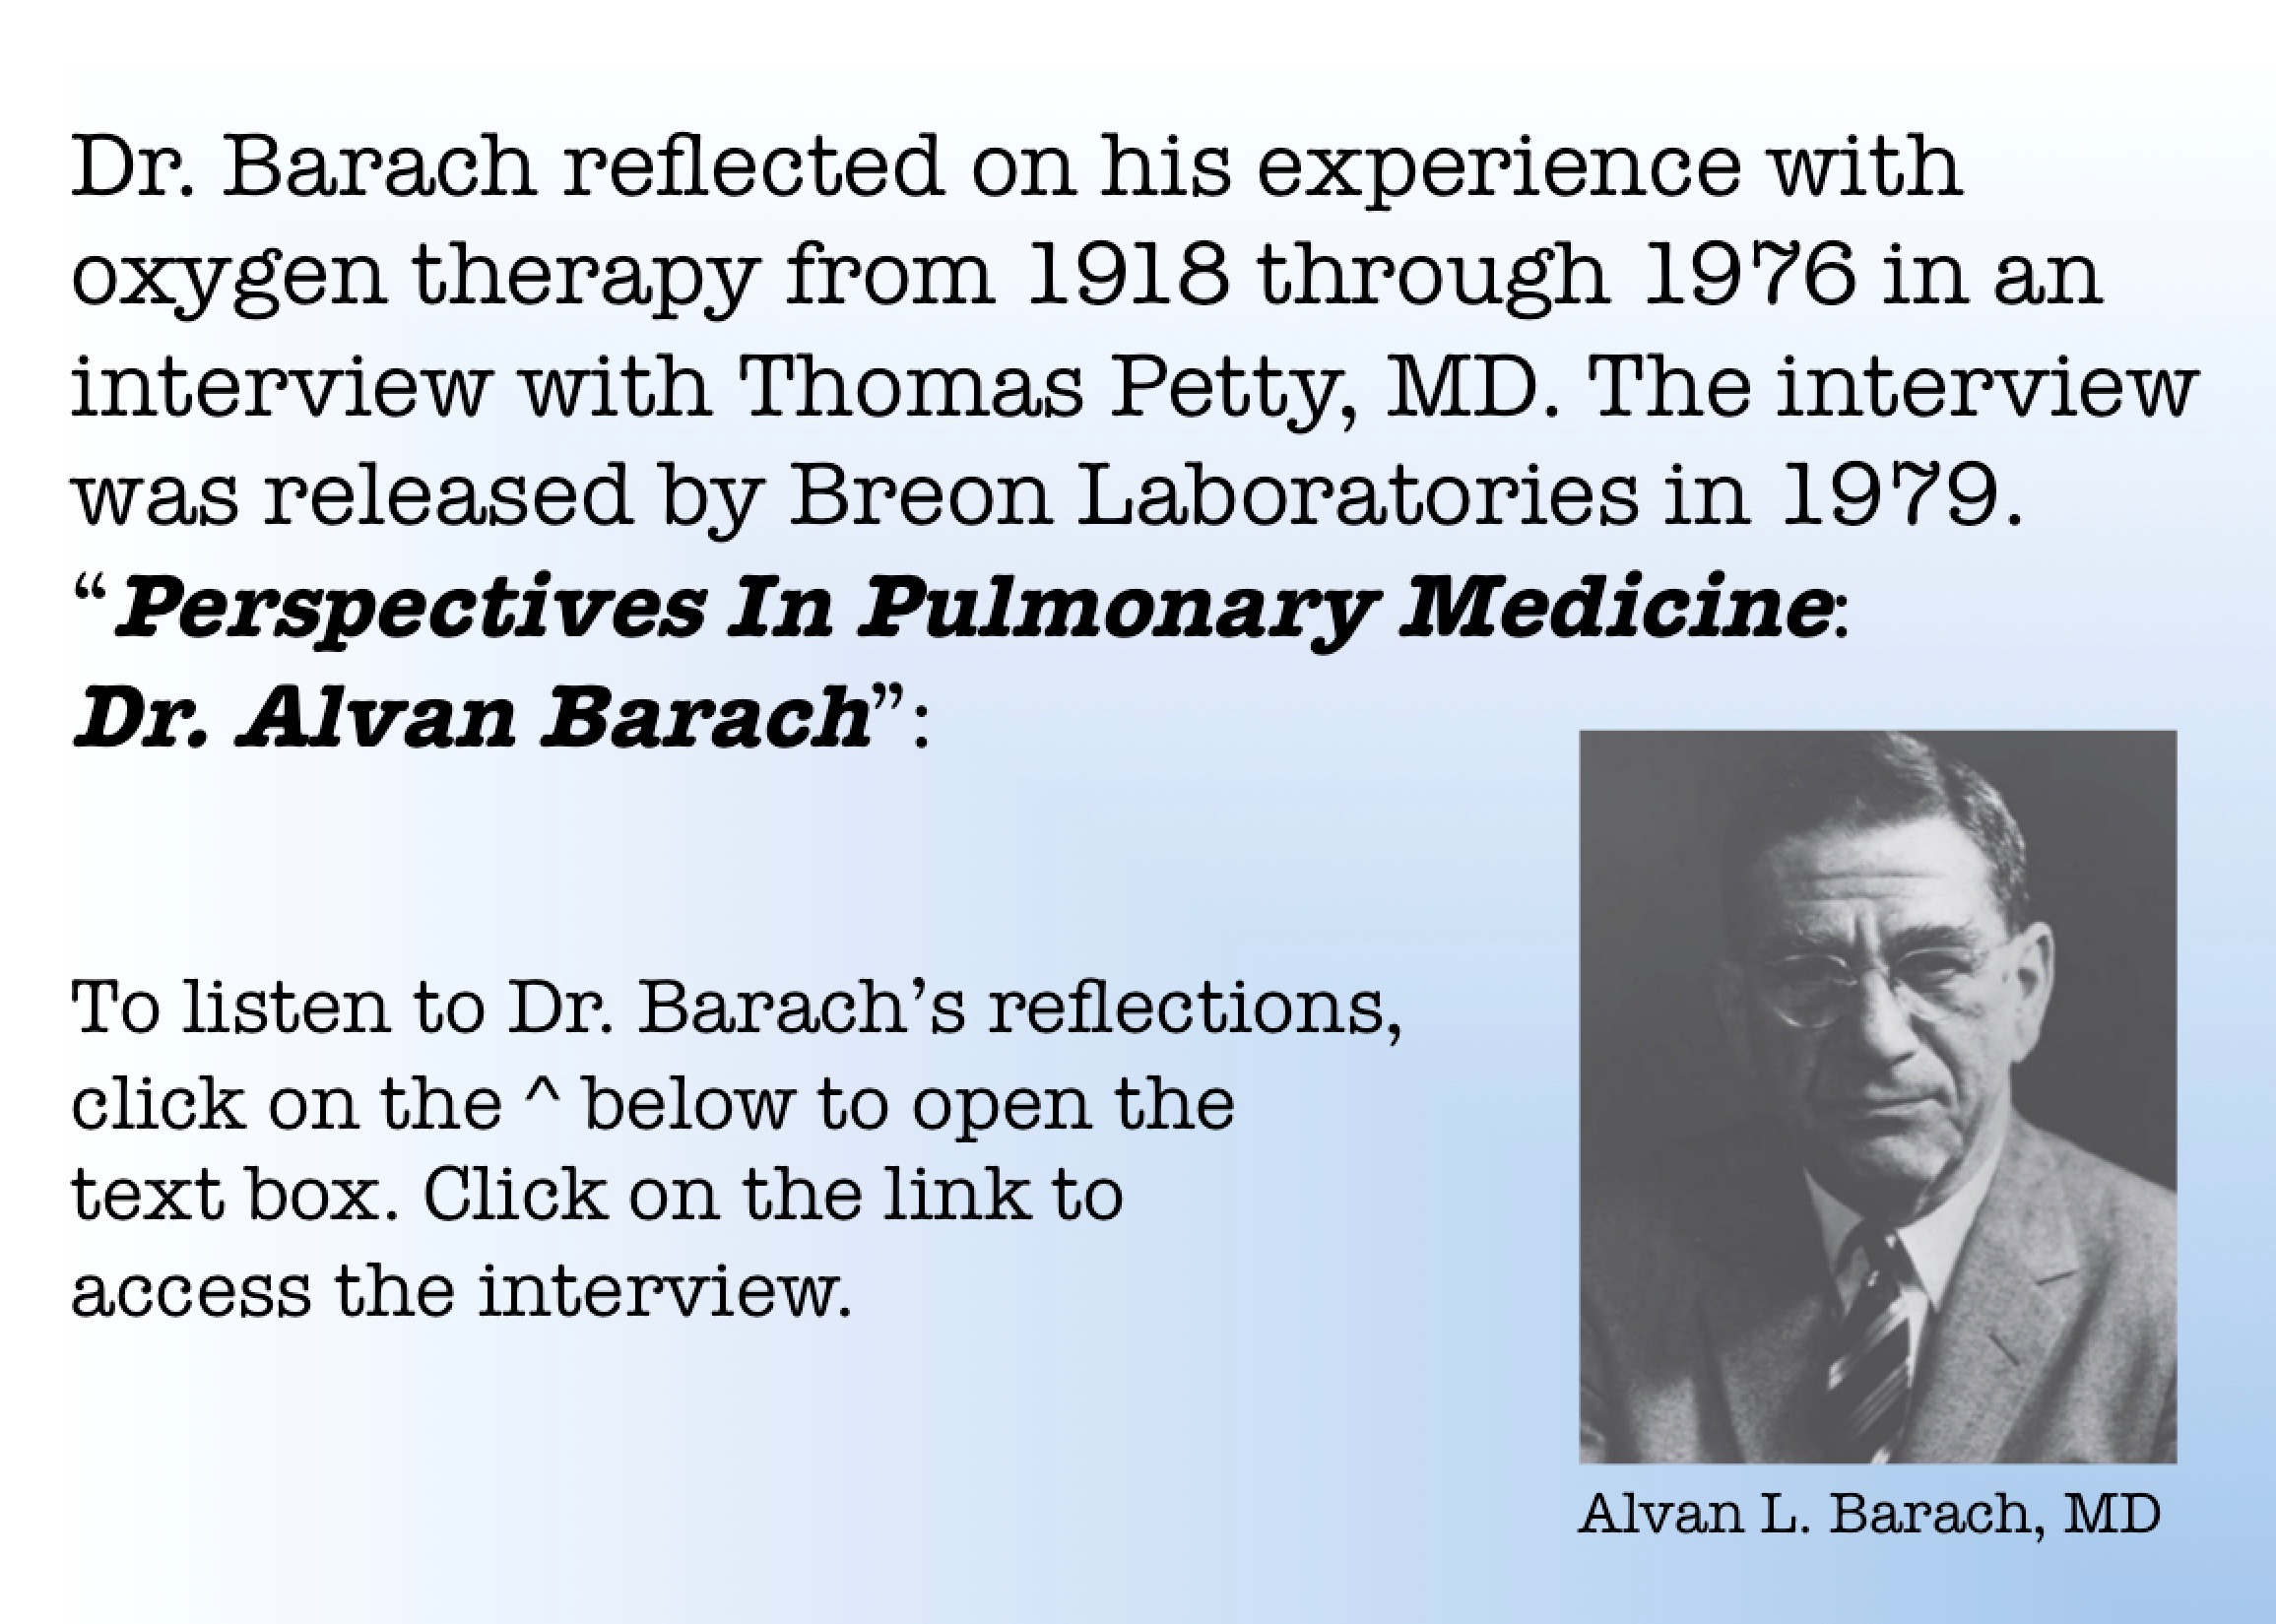 Dr. Barach's Reflections